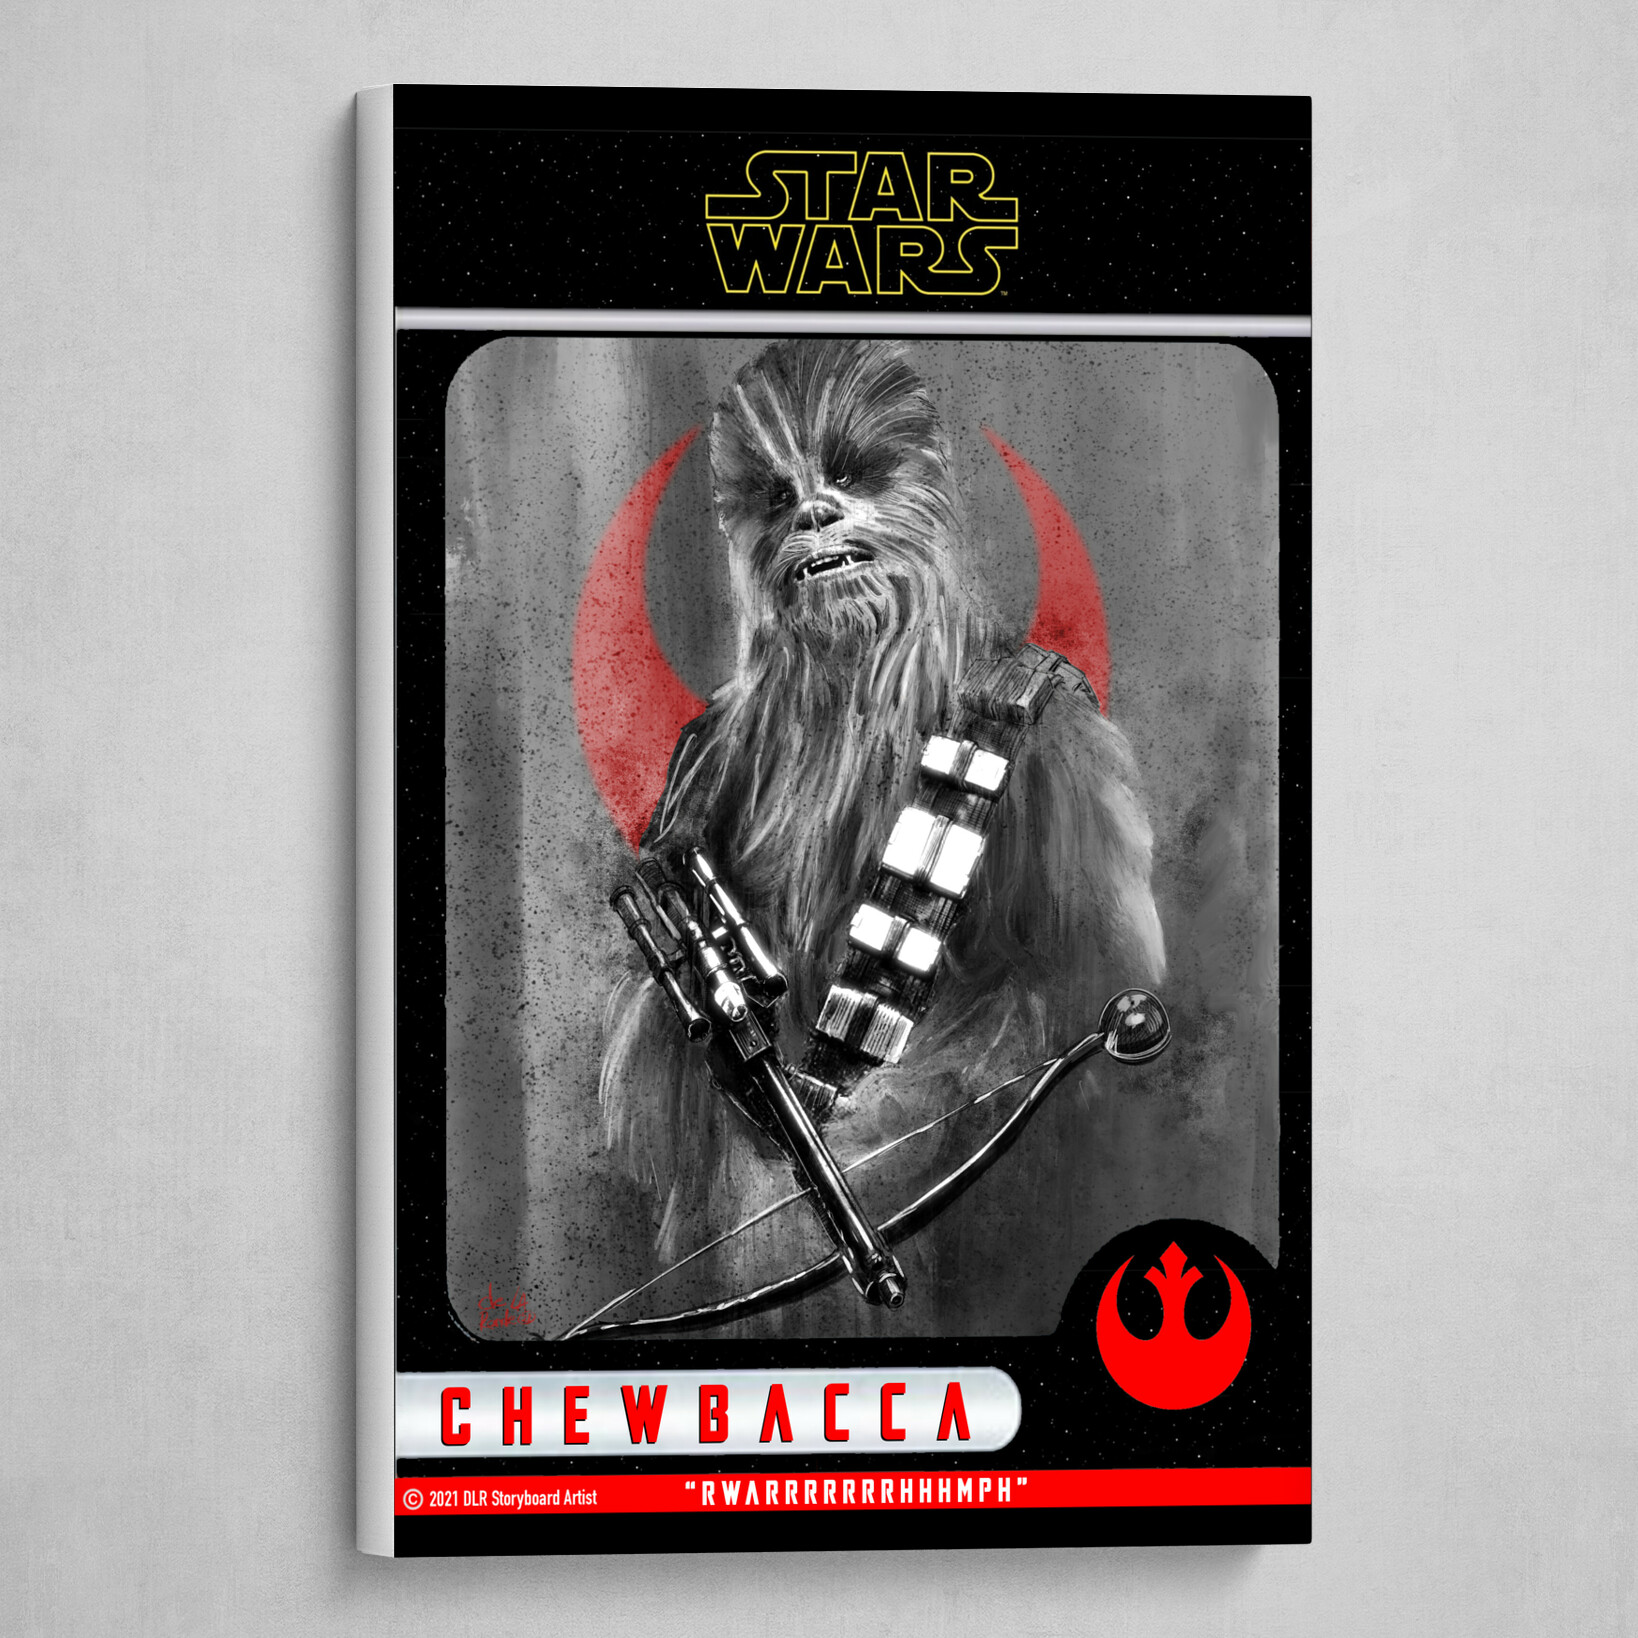 Chewbacca Poster (Trading Card Design Style) B&W with Red and Yellow